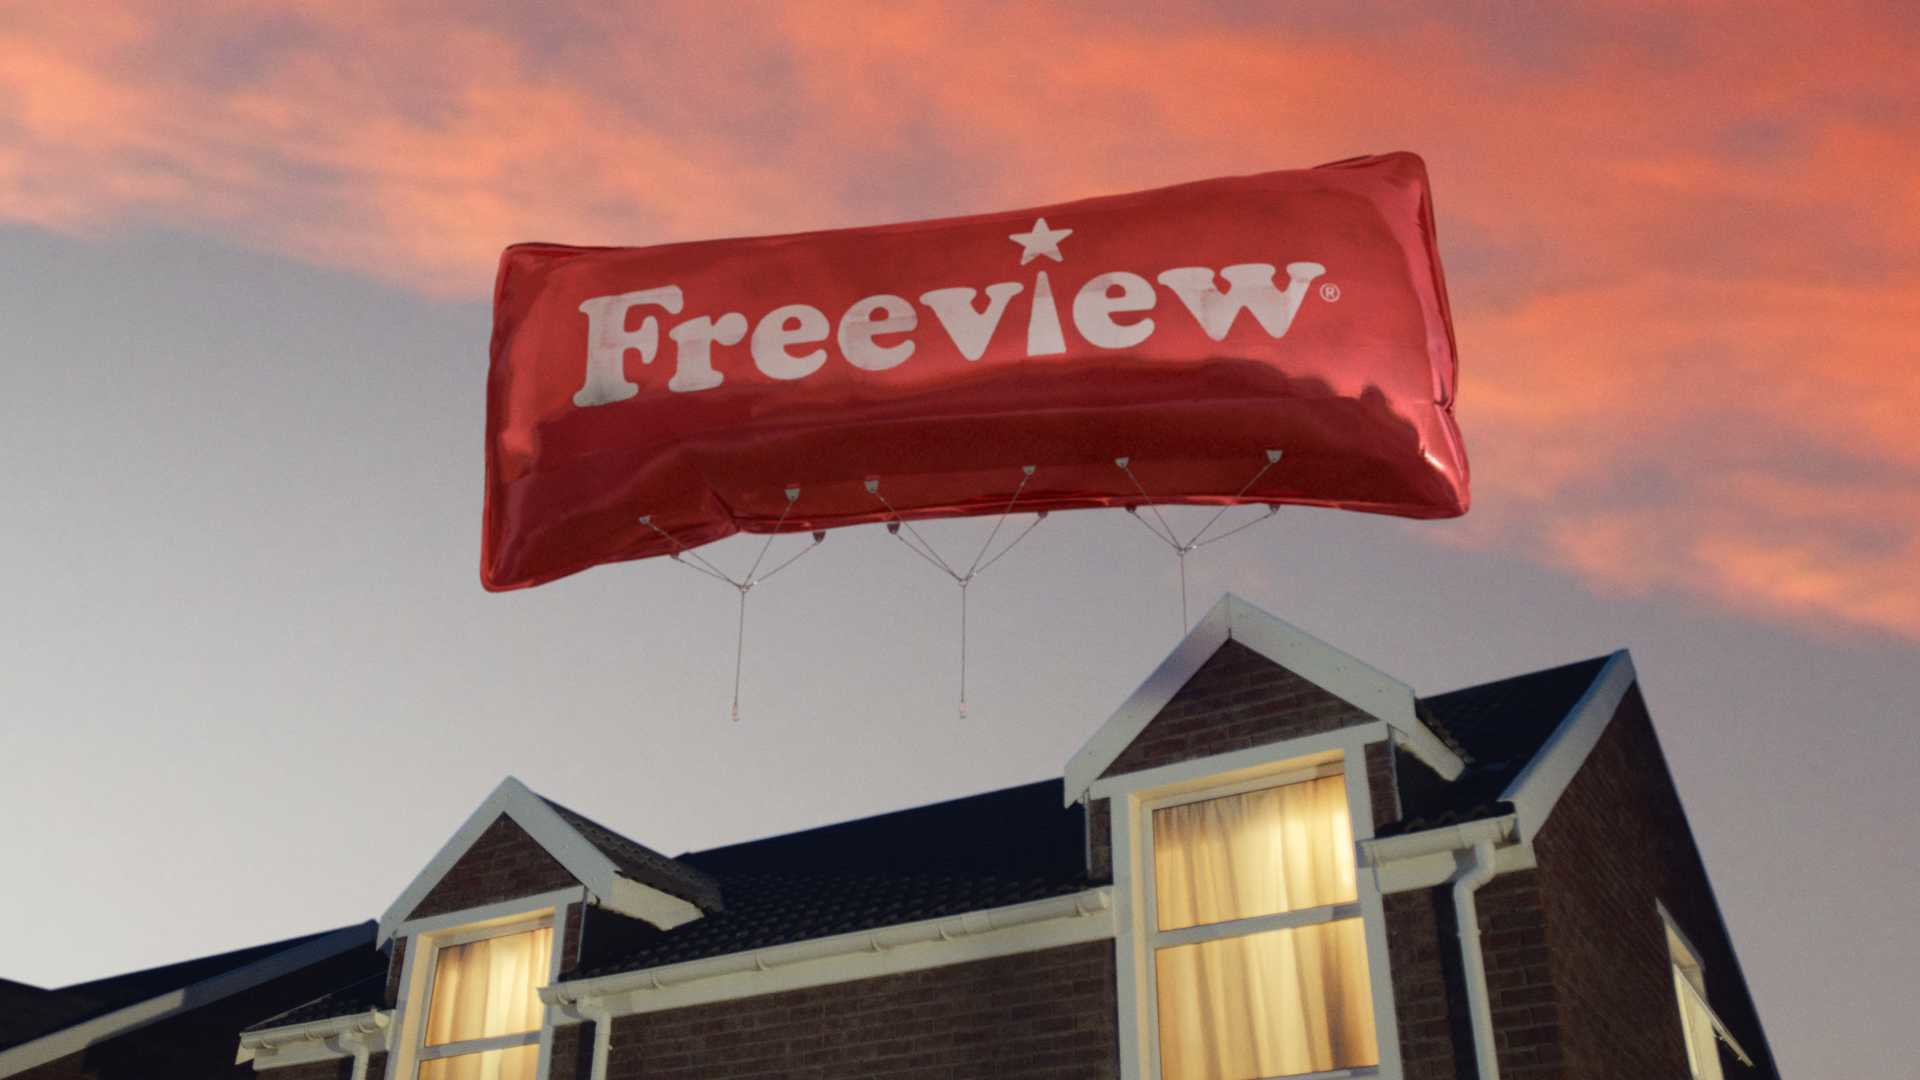 FreeviewValueCampaign-Campaign-2013